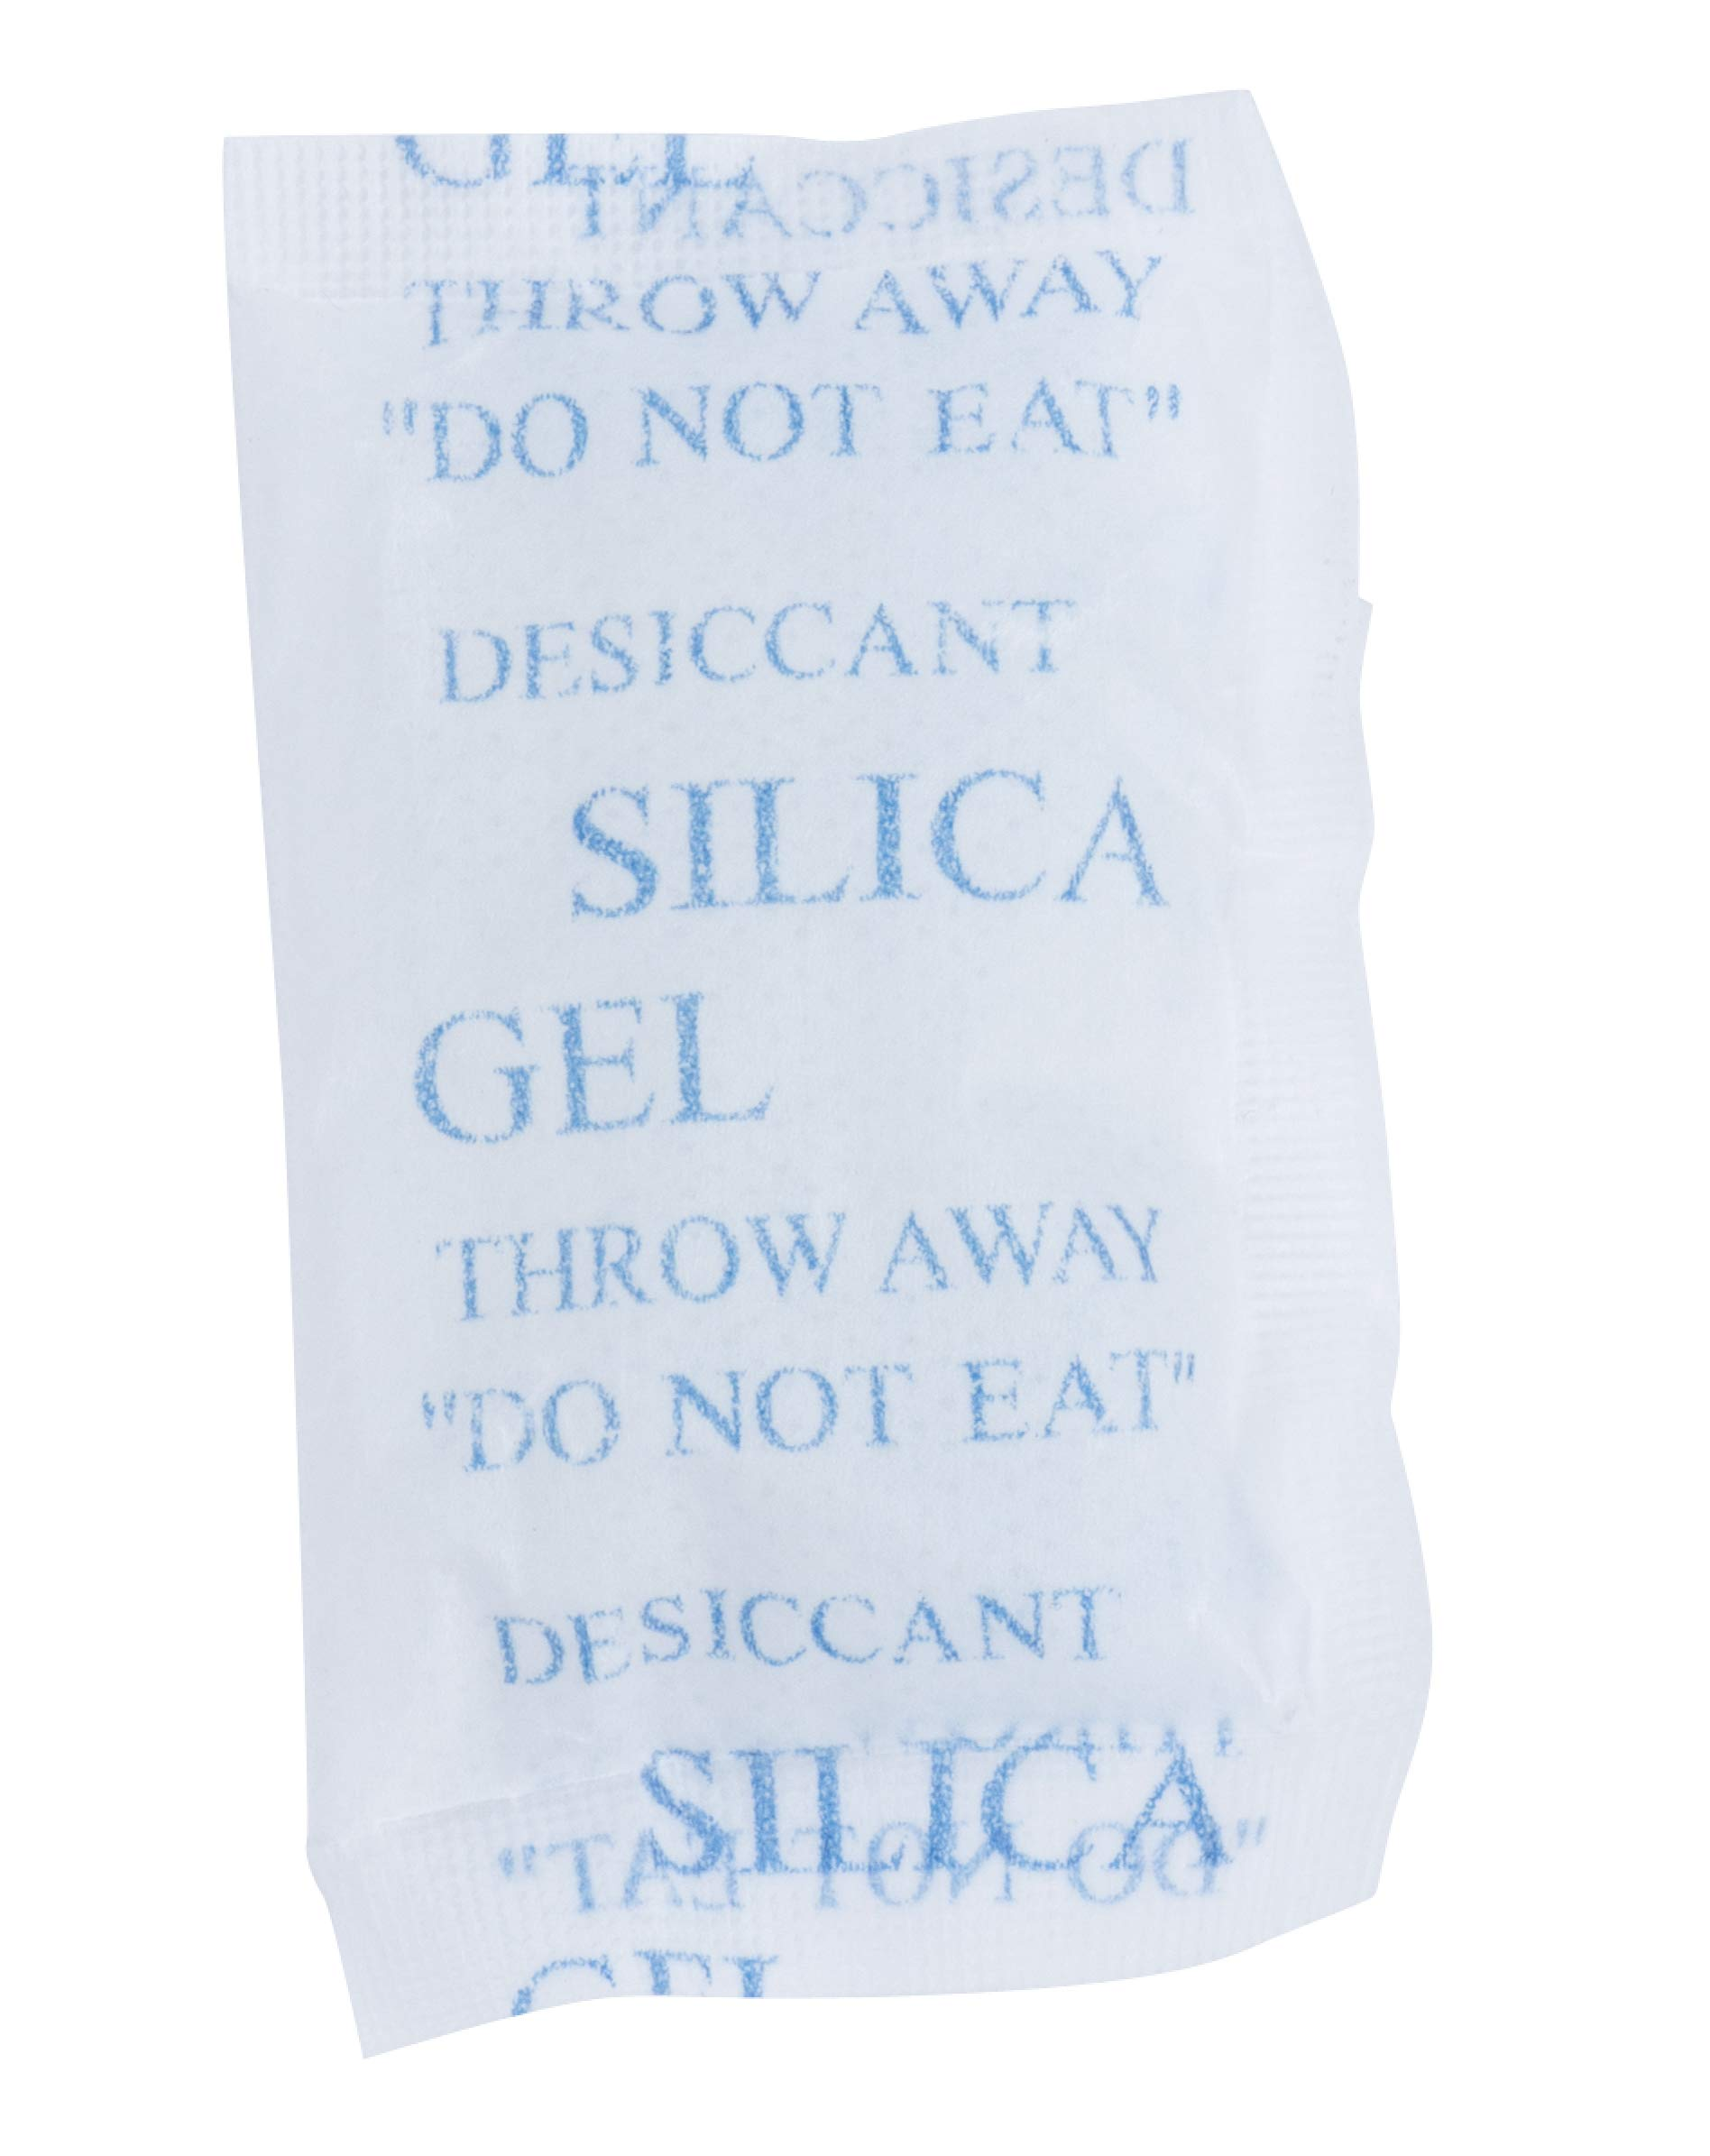 Silica Gel Packets - 100-Pack Silica Gel Packs, 10 Gram Desiccant, Dehumidifier, Prevent Humidity, Mold, Mildew, Odor by Juvale (Image #4)